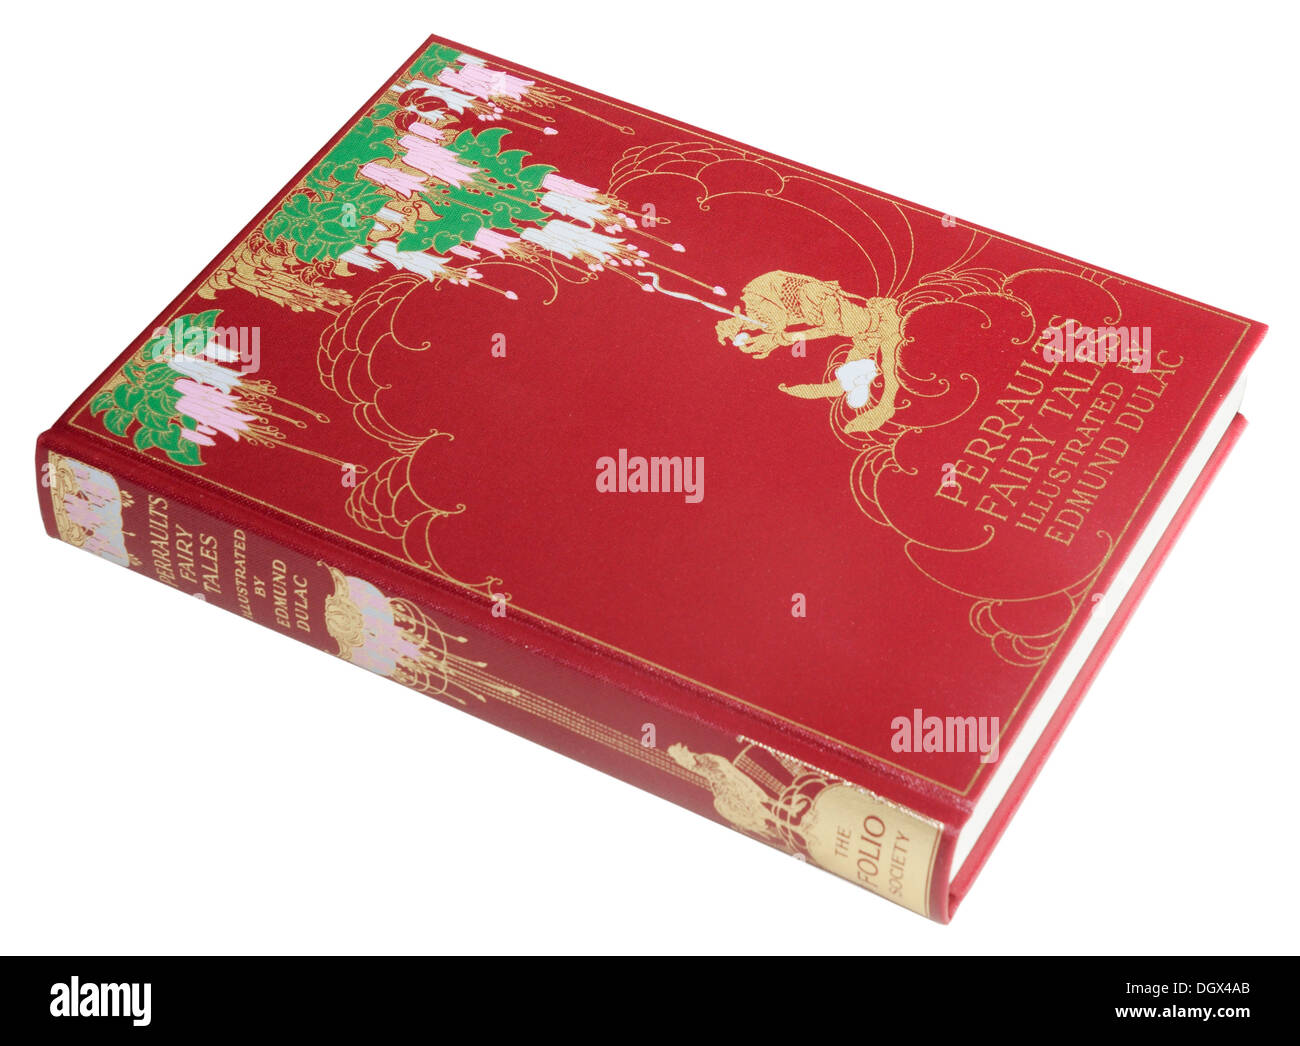 A Folio Society edition of Perrault's Fairy Tales - Stock Image